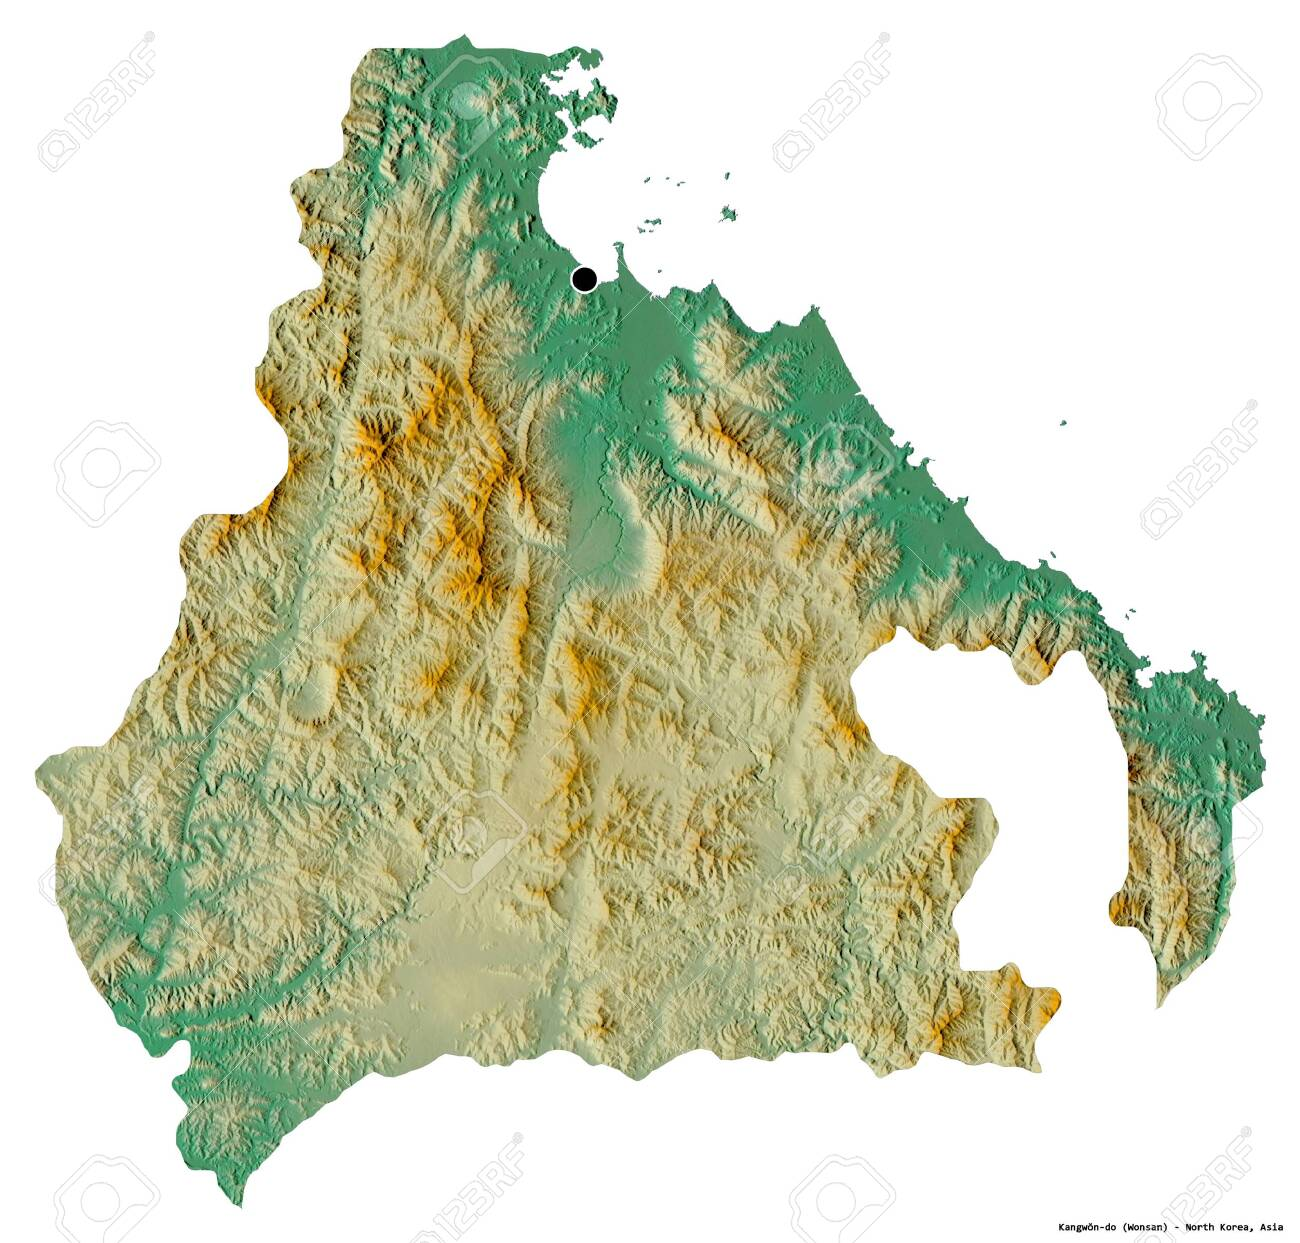 Shape of Kangwŏn-do, province of North Korea, with its capital isolated on white background. Topographic relief map. 3D rendering - 156387549